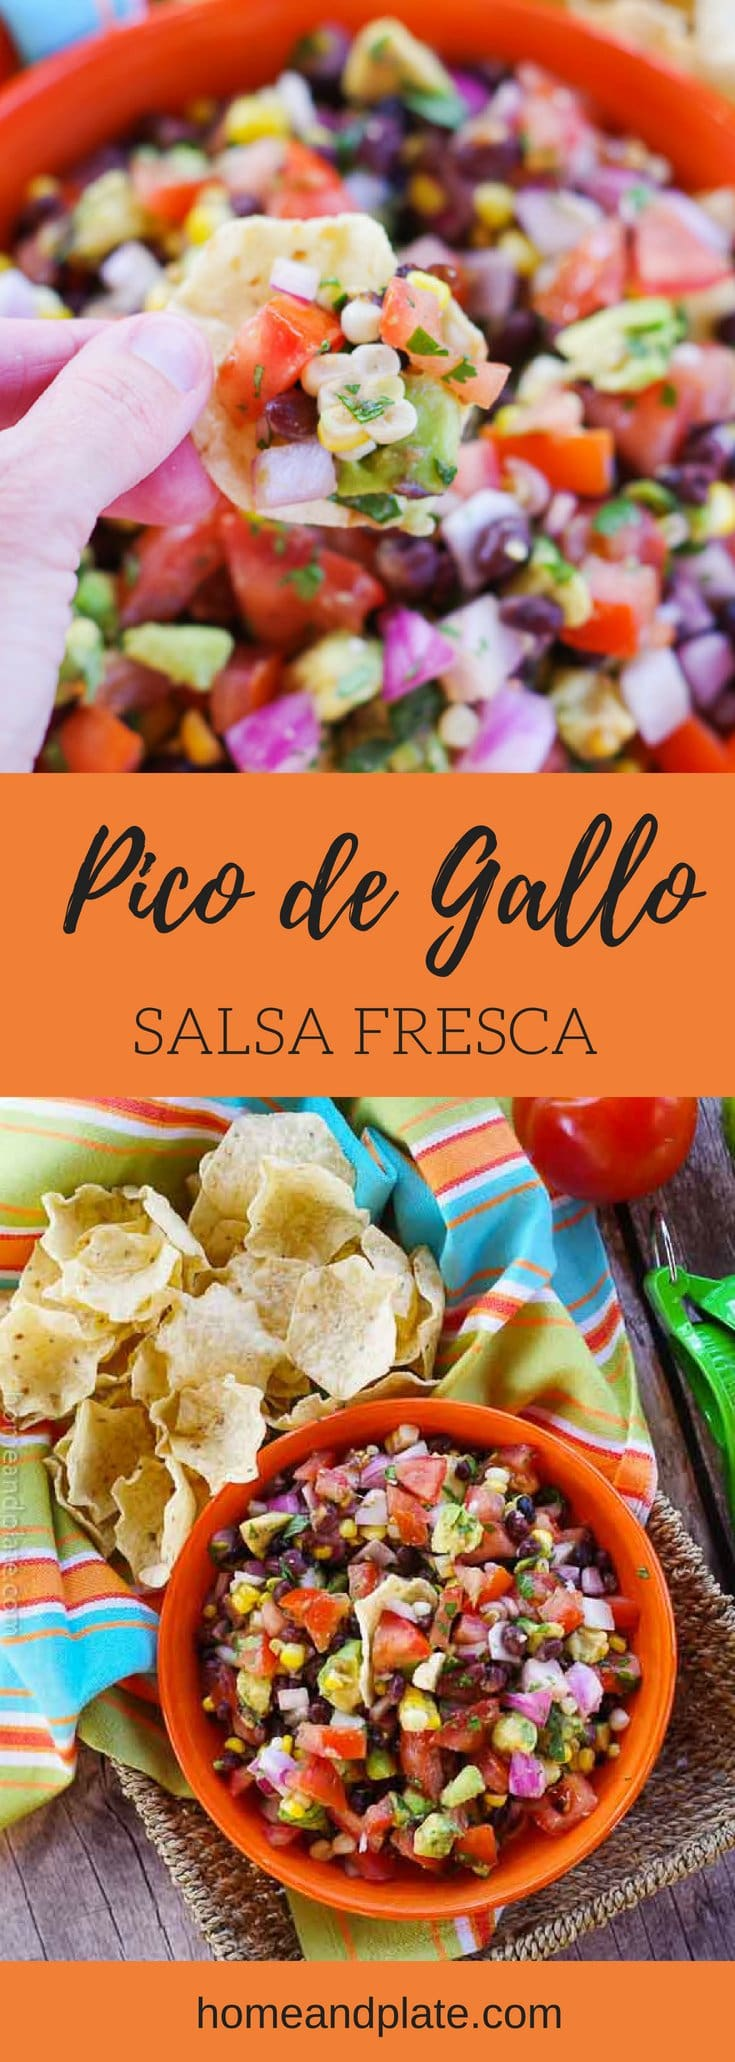 Pico de Gallo - Salsa Fresca | Homegrown tomatoes, sweet corn kernels, black beans, avocado, cilantro and lime juice is all you need to make the freshest salsa. This pico de gallo - salsa fresca - taste great with chips and on all your favorite Mexican dishes. #picodegallo #salsa #salsafresca